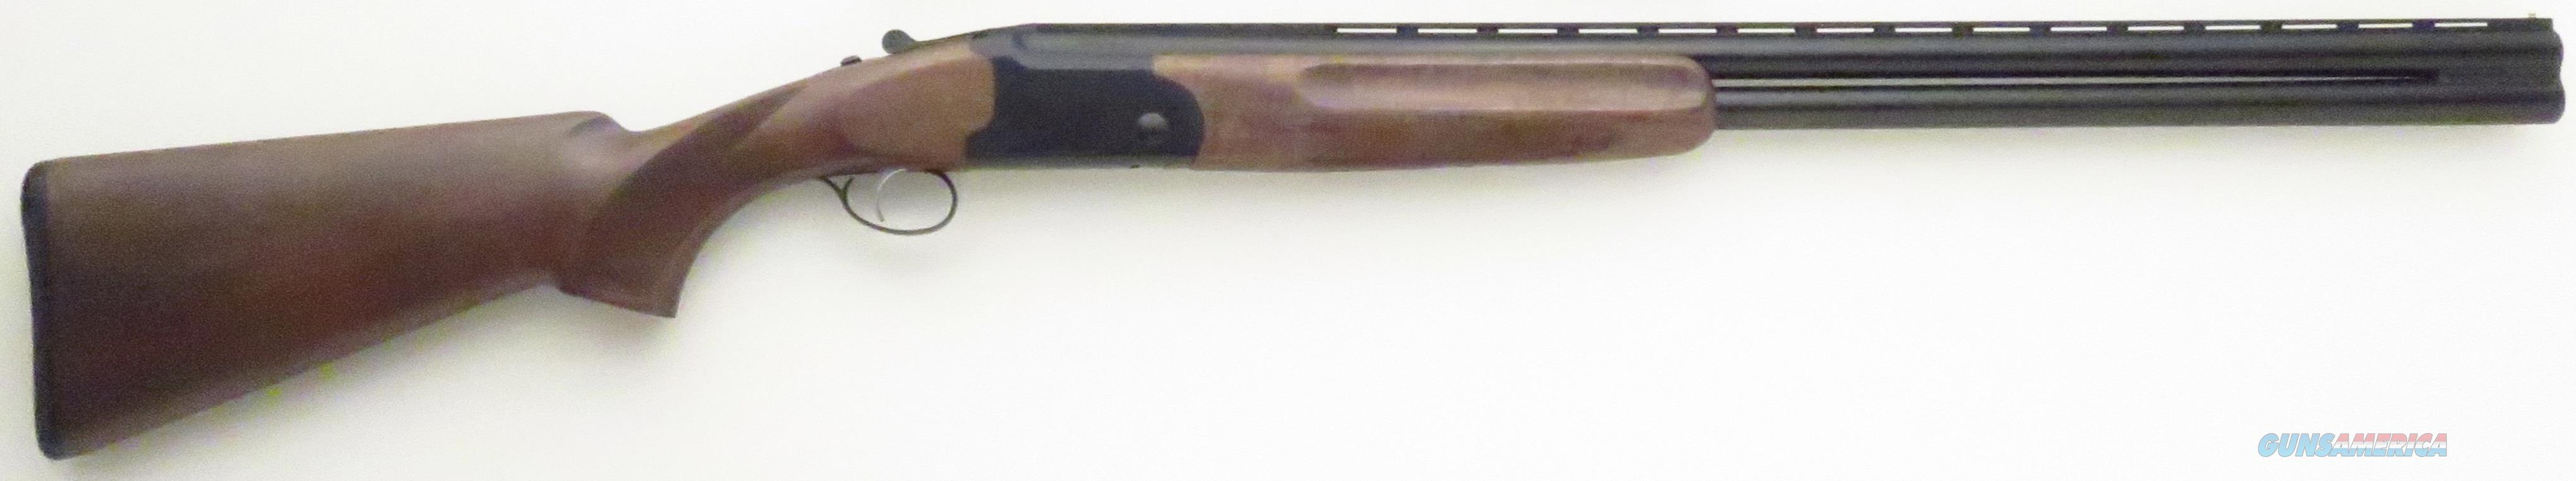 Yildiz 12 gauge O/U, 3-inch, 28-inch, 6.2 pounds, SST, unfired, IC/M tubes  Guns > Shotguns > XYZ Misc Shotguns